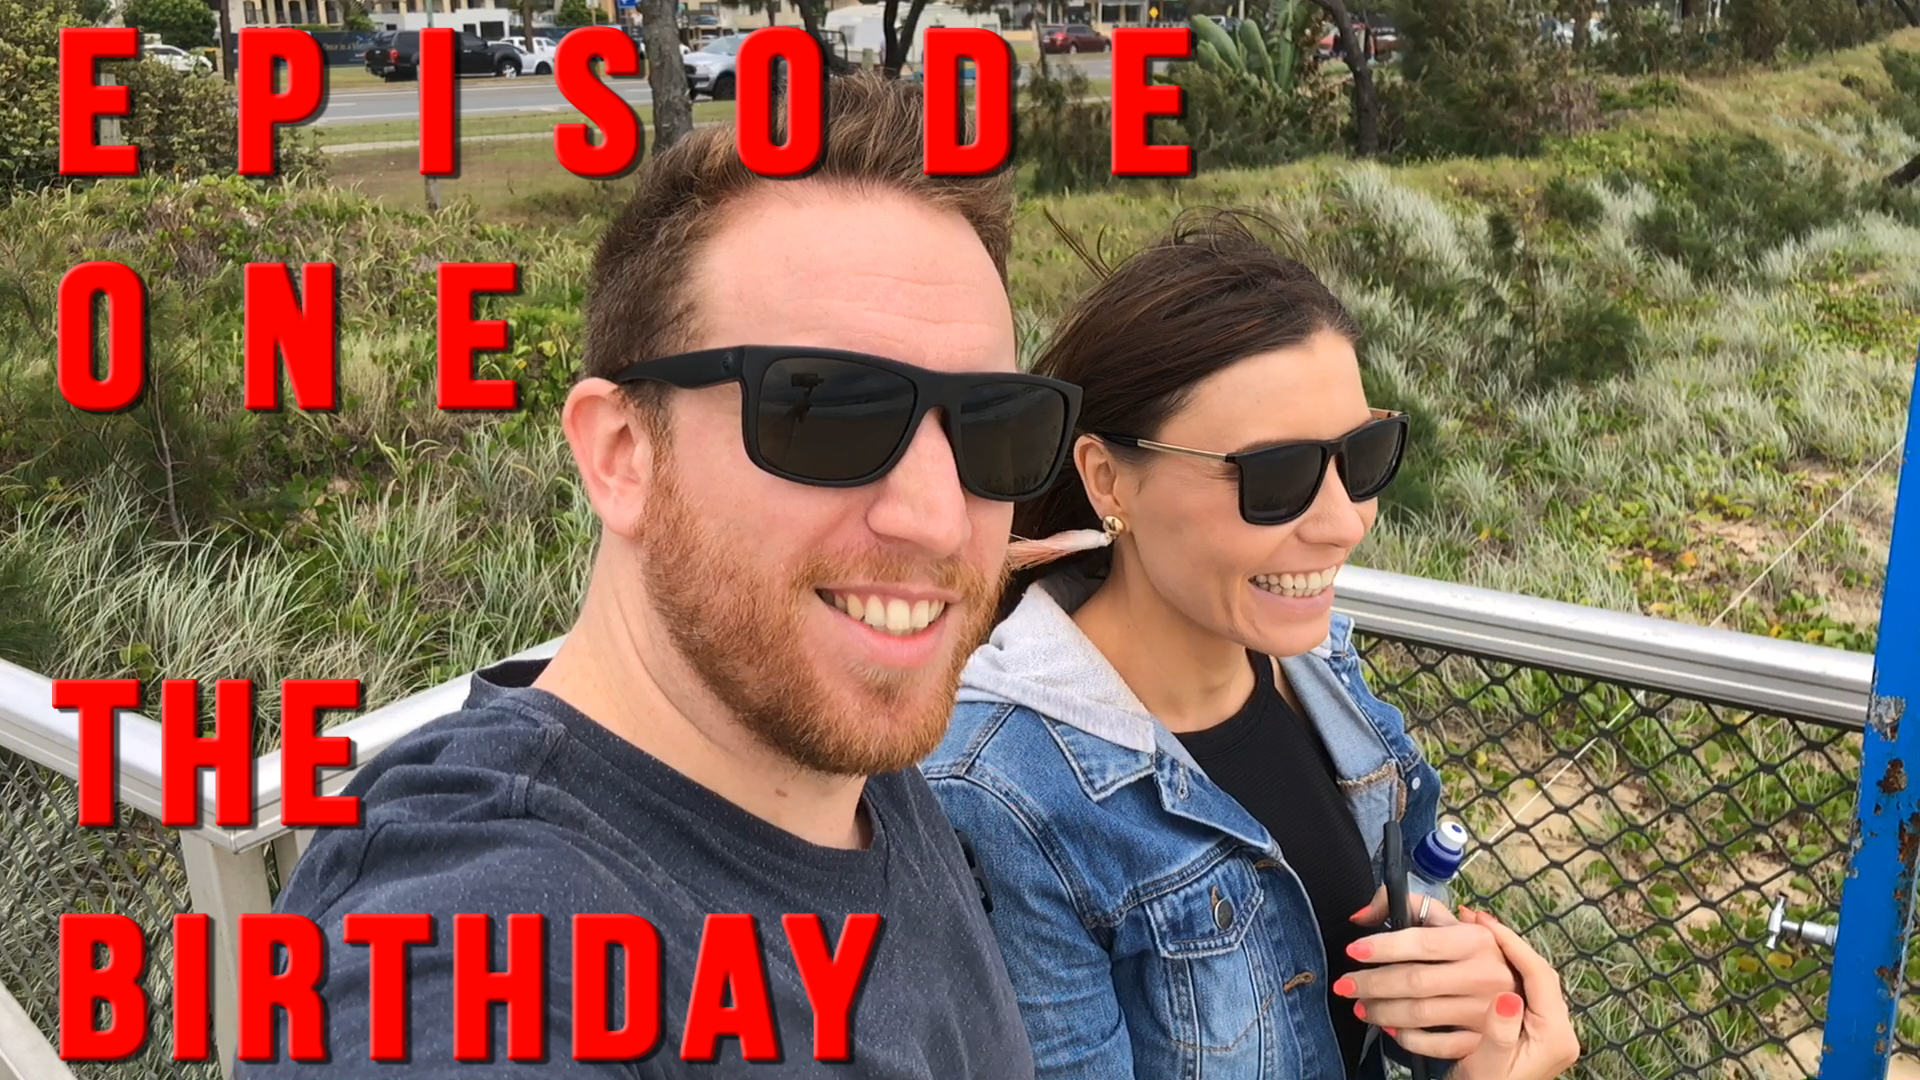 Episode 1 - The Birthday